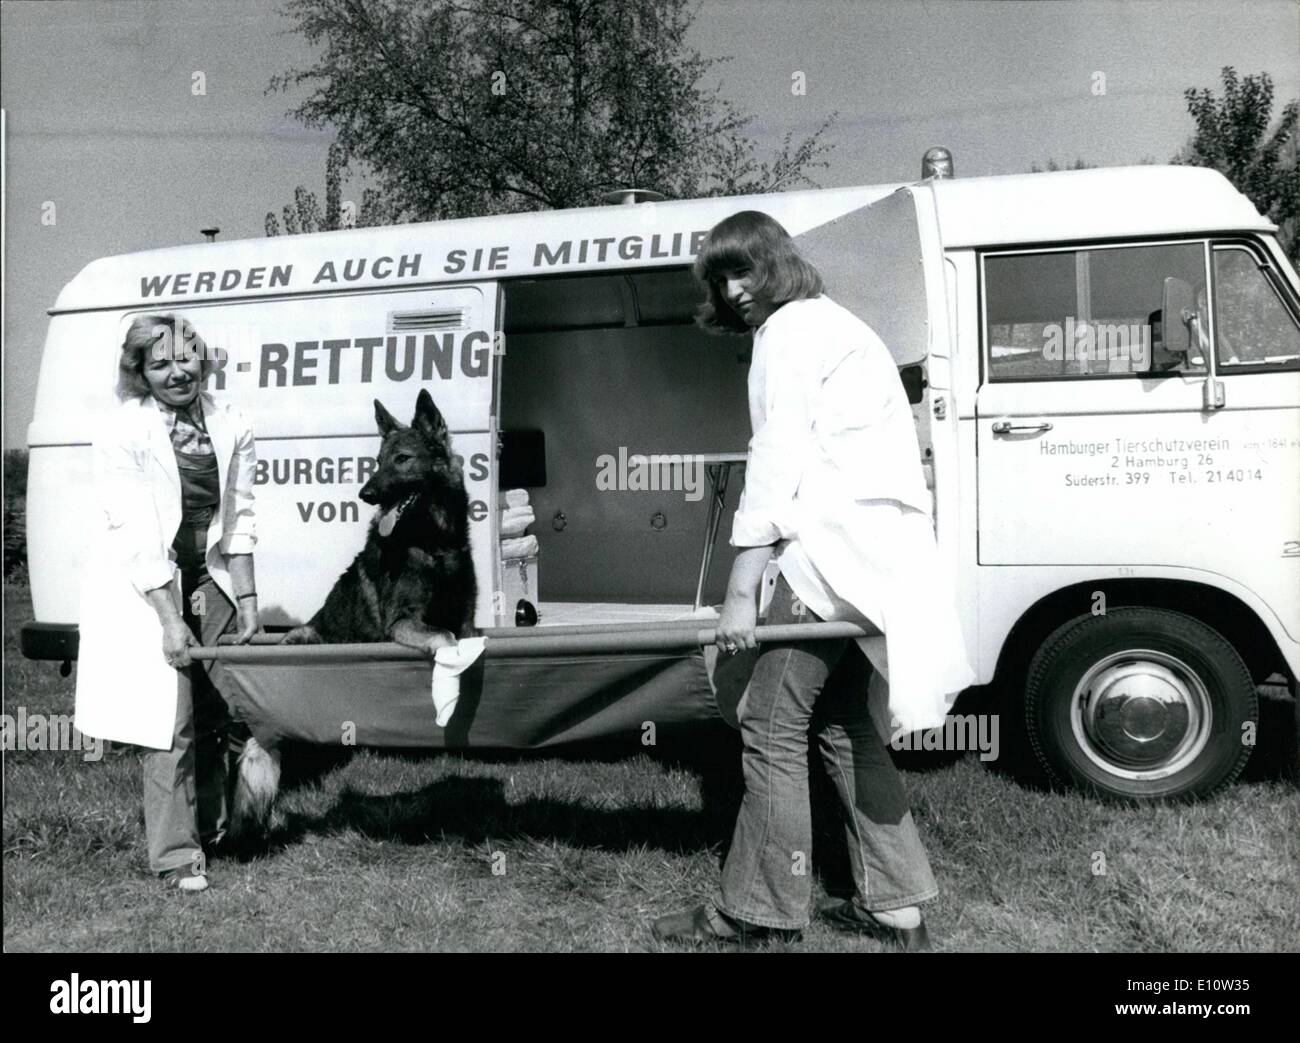 Apr. 04, 1974 - Special Car For Hurted Animals In Hamburg: A good deed... was recently done by an anonymous lover of animals, who has given a rescue-car for animals to the society for prevention of Cruelty to Animals in Hamburg. With the special car whose equipment is alike to the rescue-car for people, hurted and ill animals can be helped quicker than before. For special operations the car has leashes and narcotization instruments for seizing bolted ozelots and other exotic animals - Stock Image